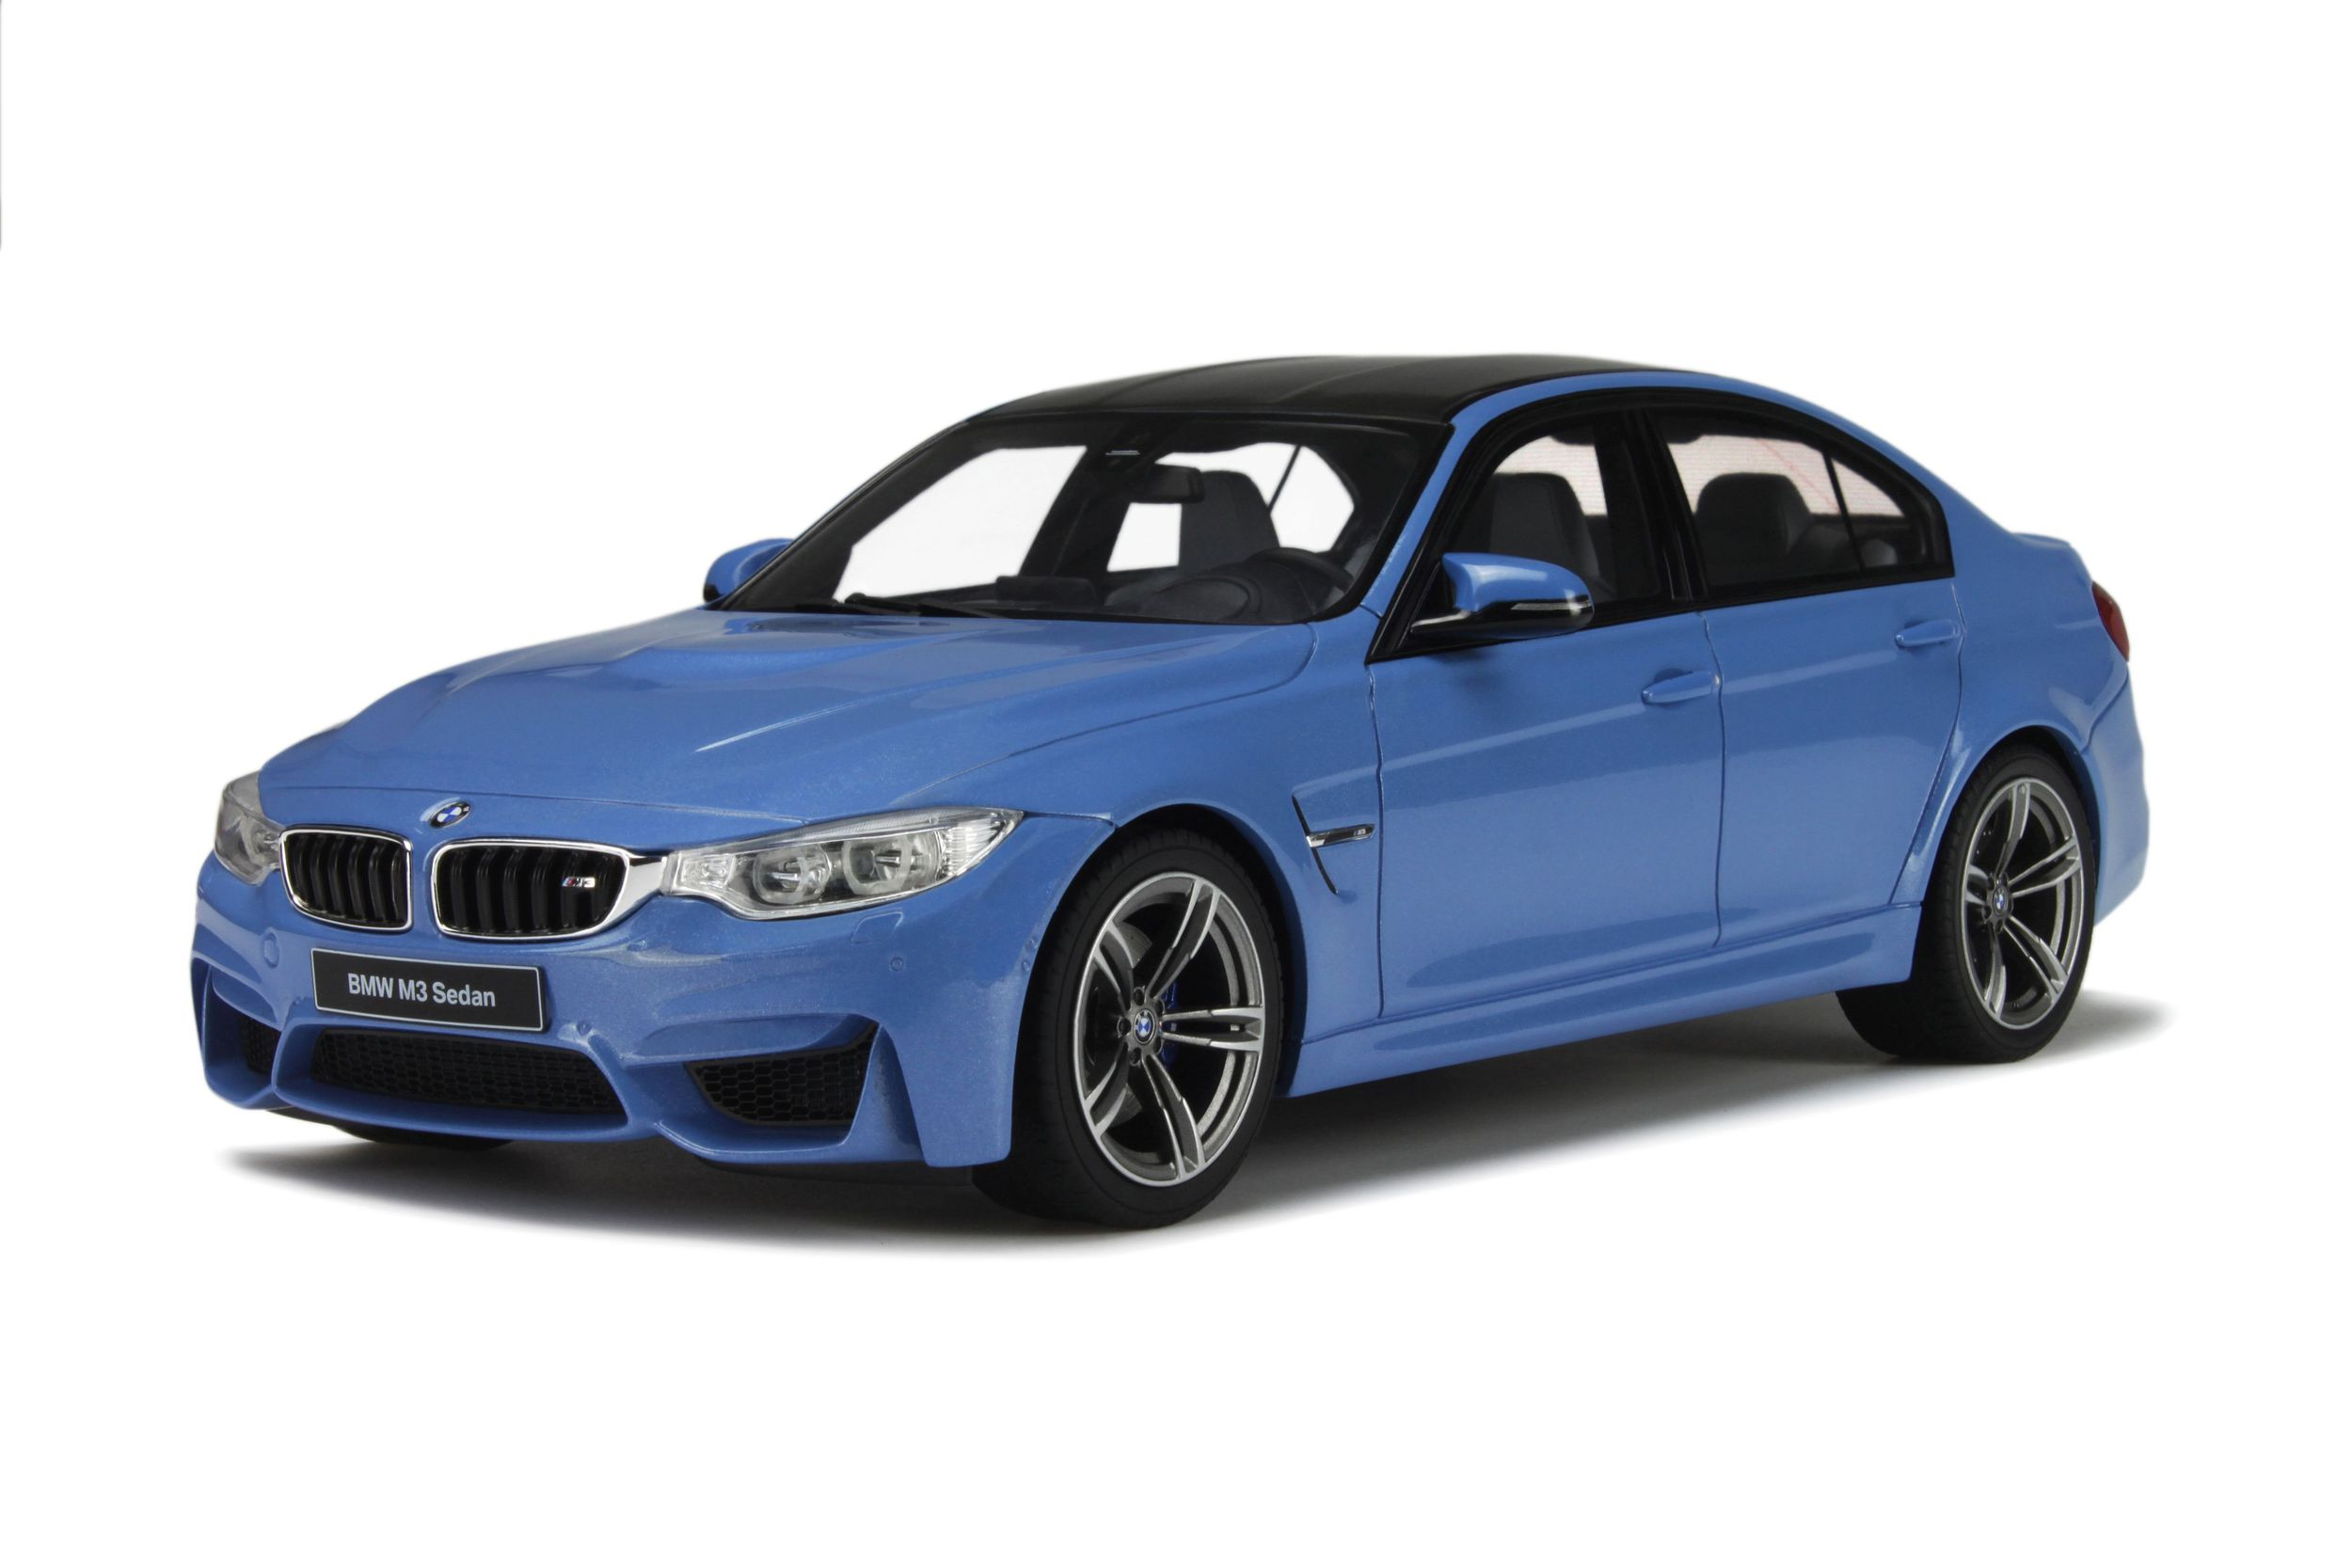 bmw m3 sedan (f80) - model car collection | gt spirit